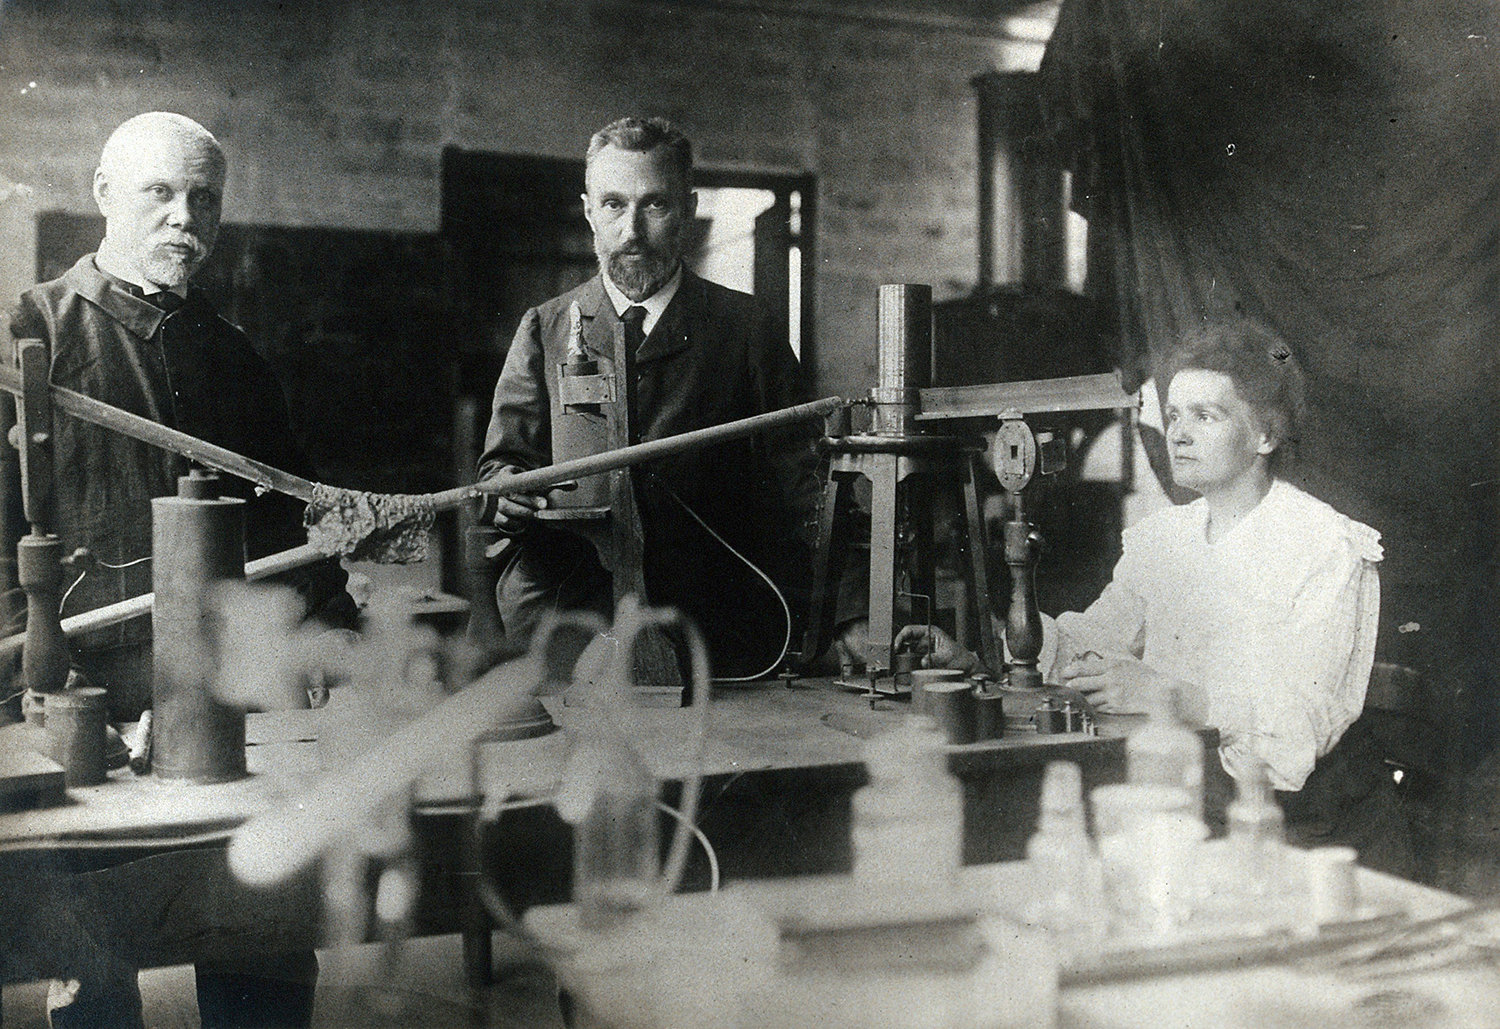 Marie and Pierre Curie (centre) with a man, using equipment in their laboratory, Paris, ca. 1900, Unknown photographer, Wellcome Collection, CC BY